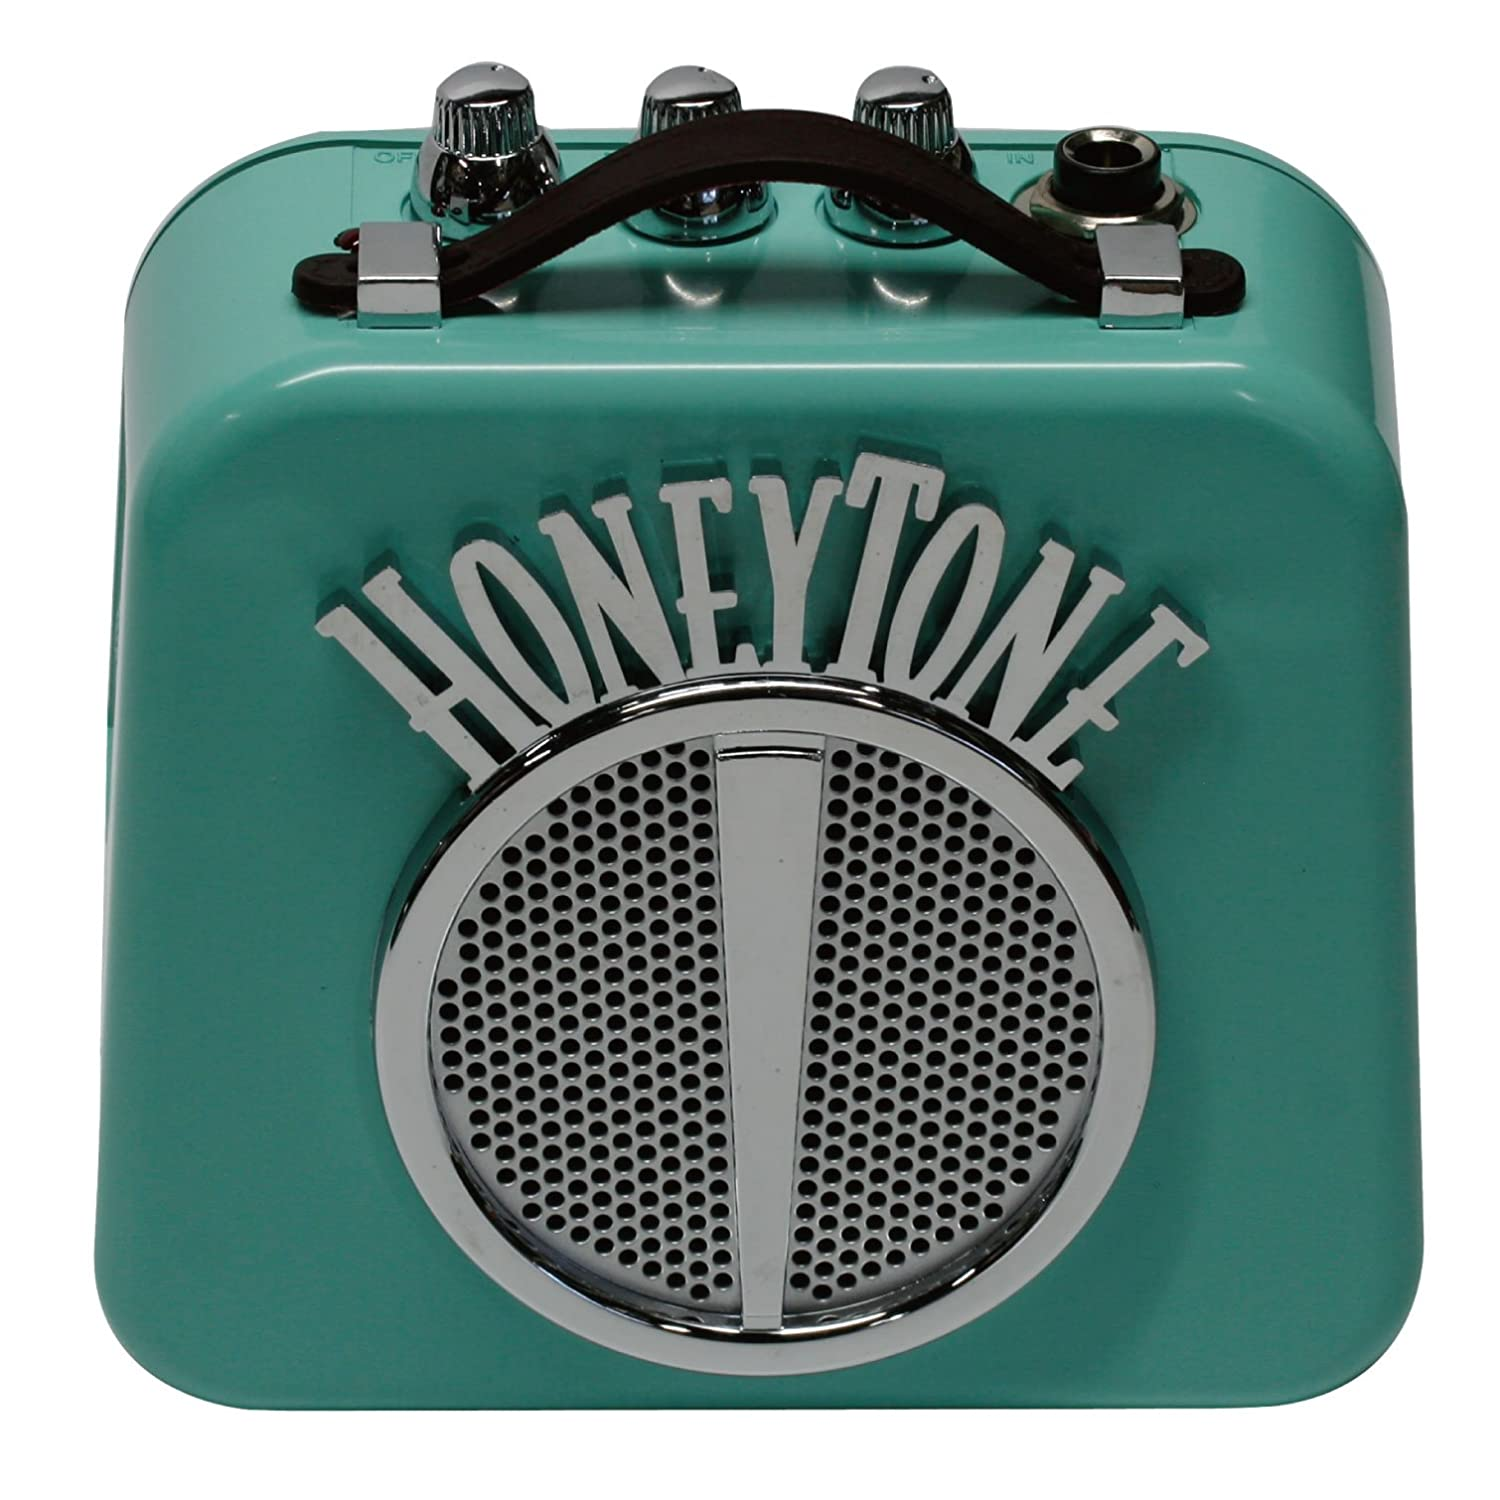 Danelectro Electric Guitar Mini Amplifier, Aqua (N10A)